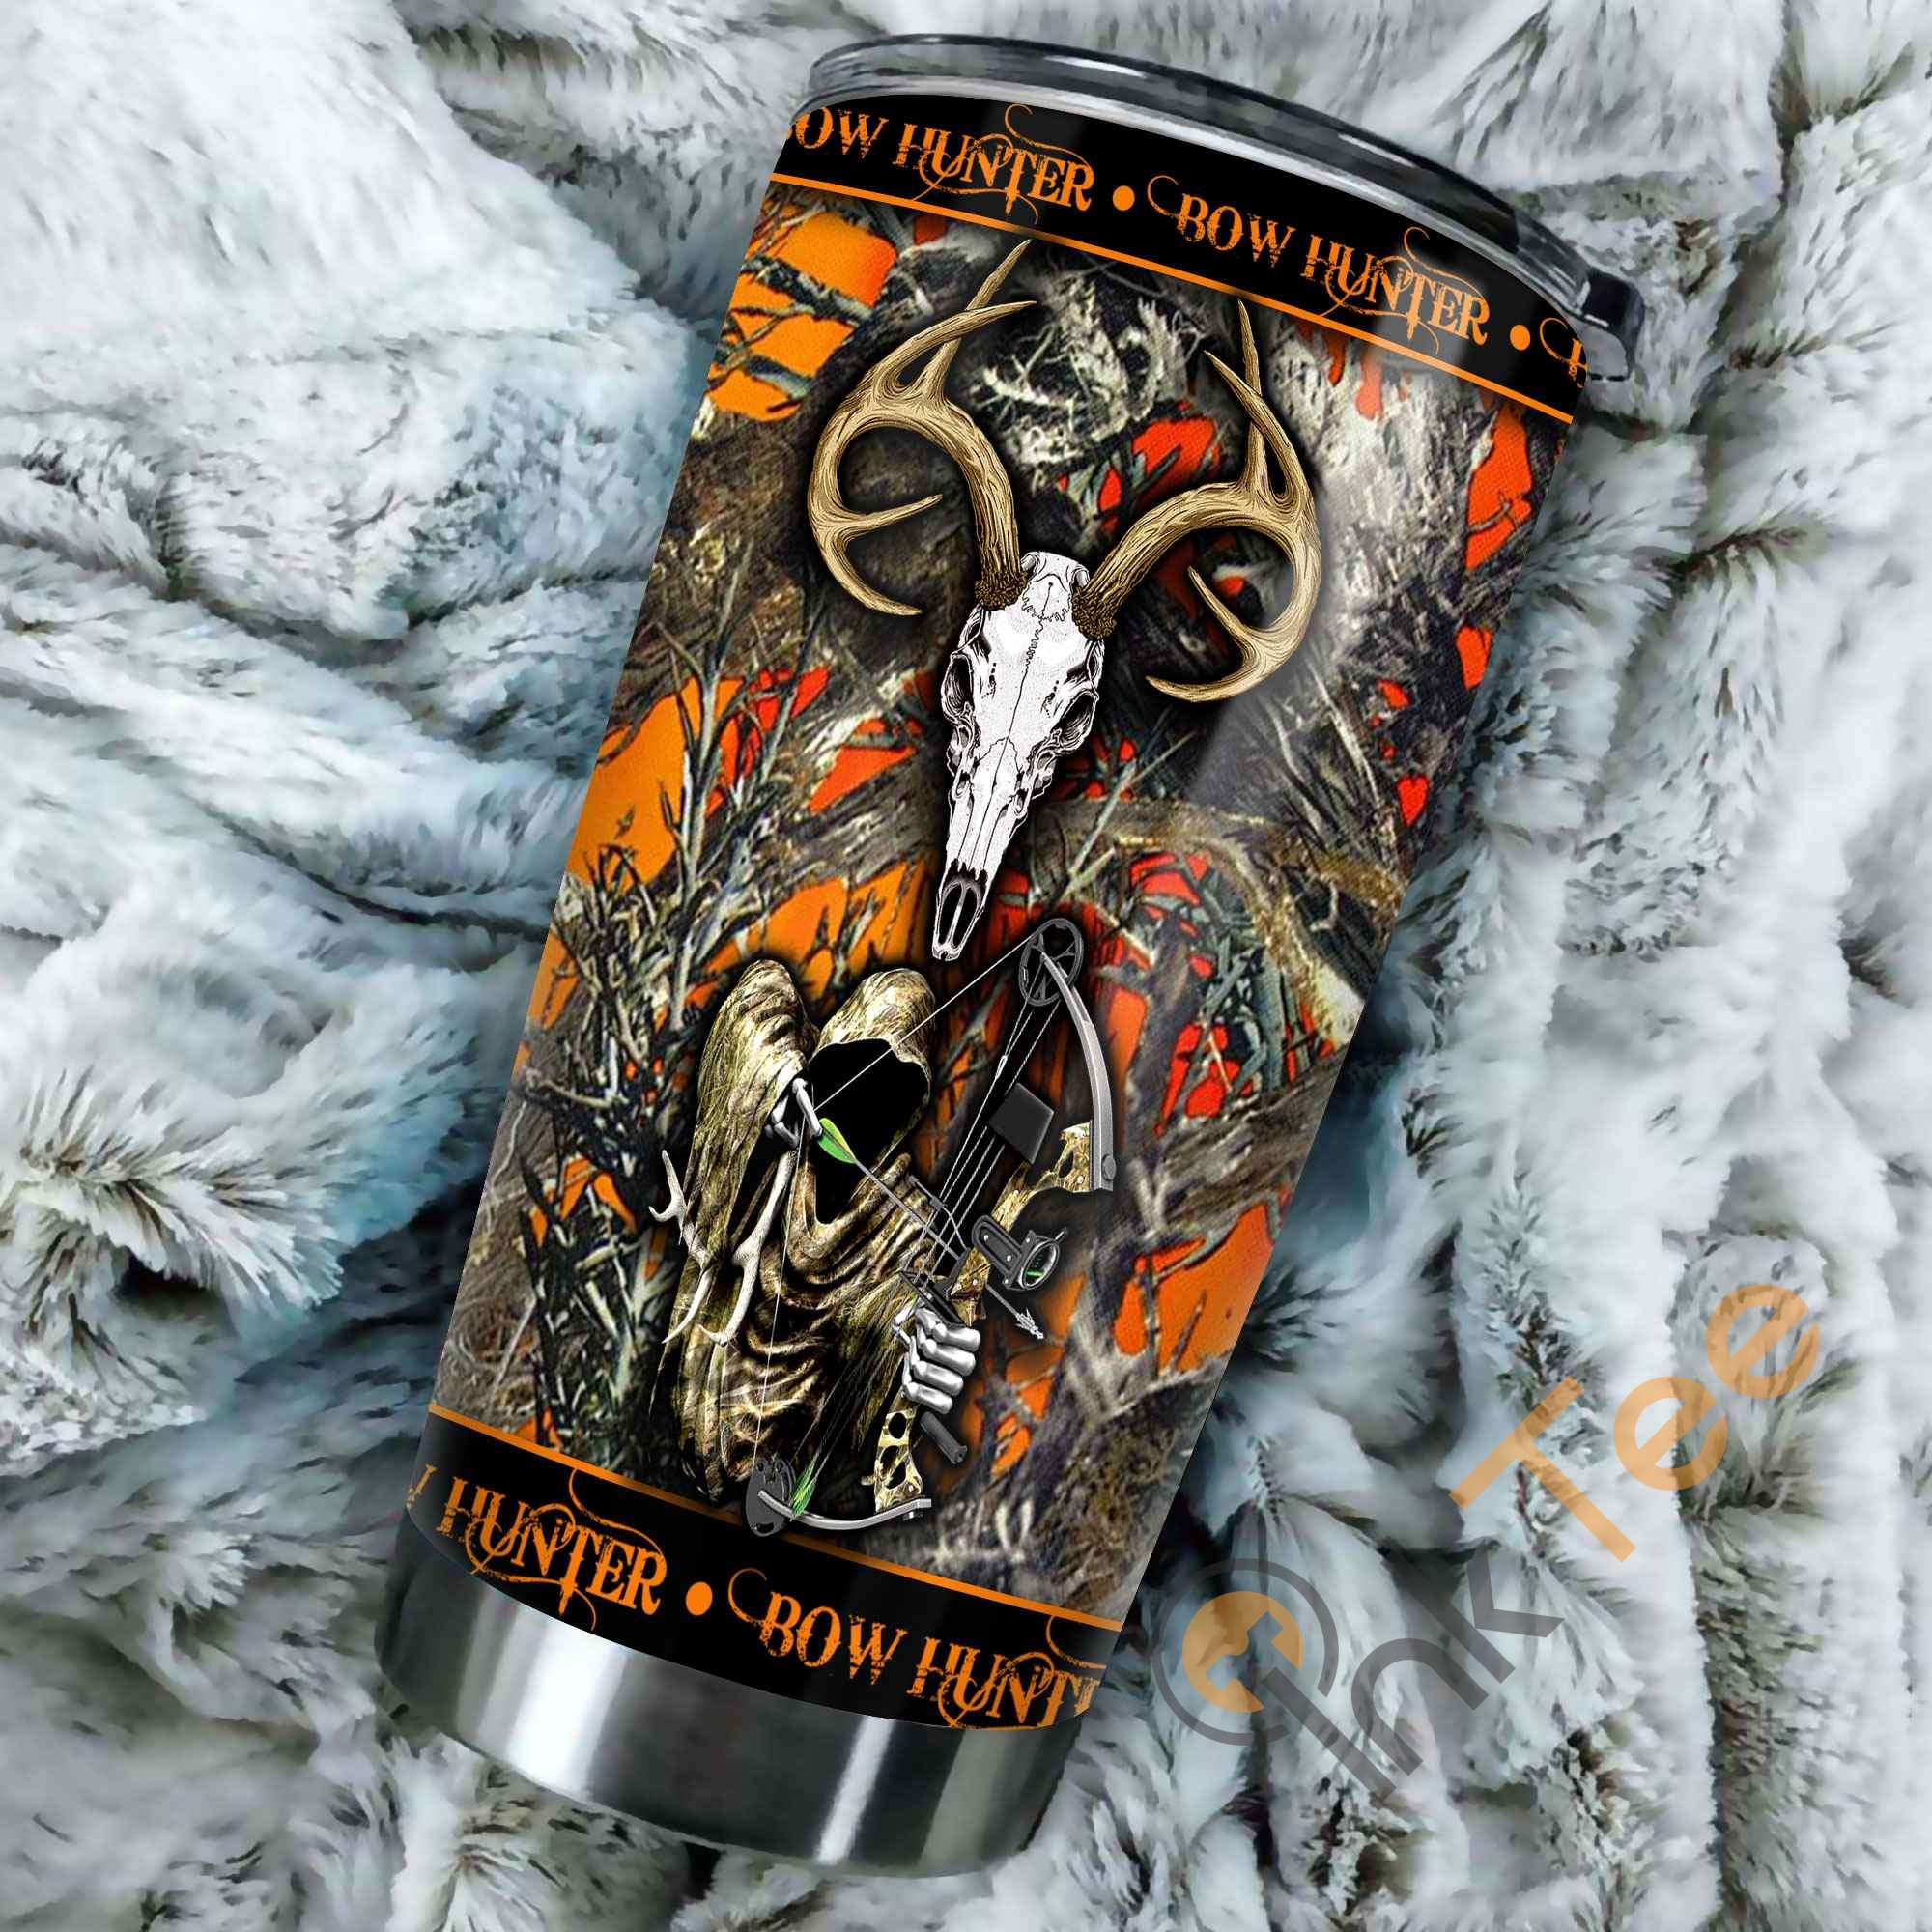 Grim Reaper Bow Hunter Camo Stainless Steel Tumbler